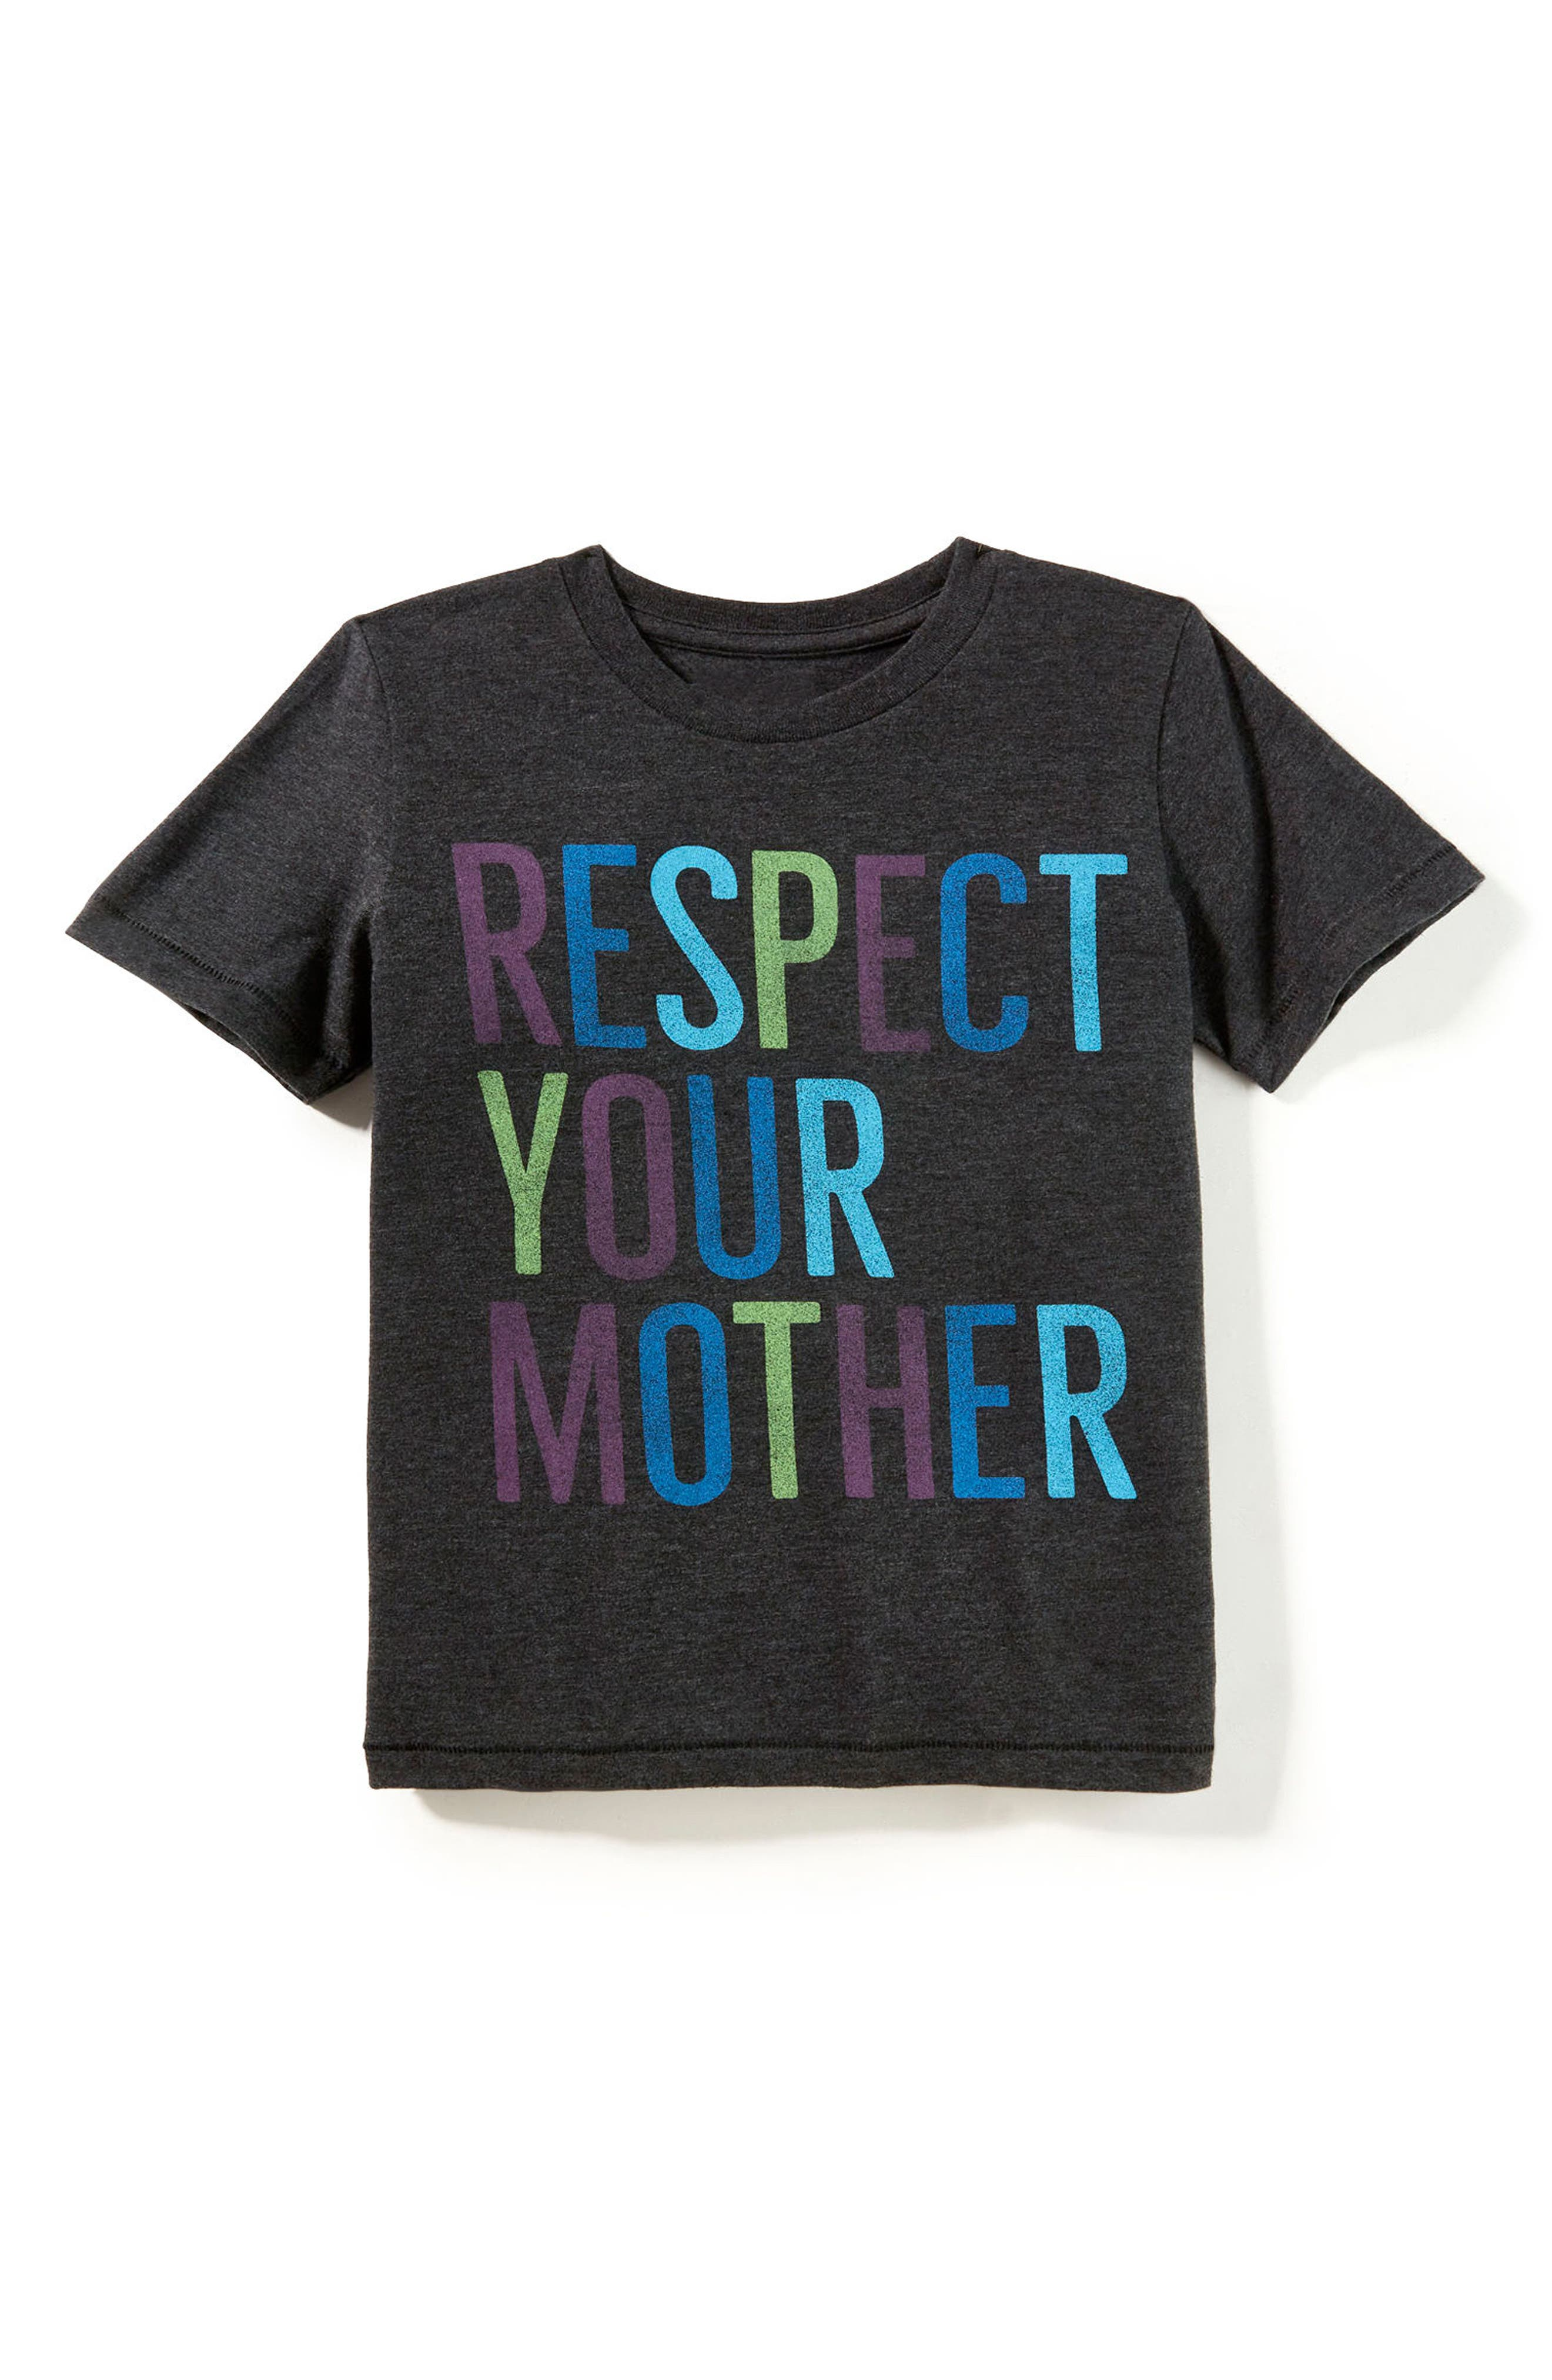 Main Image - Peek Respect Your Mother Graphic T-Shirt (Toddler Boys, Little Boys & Big Boys)